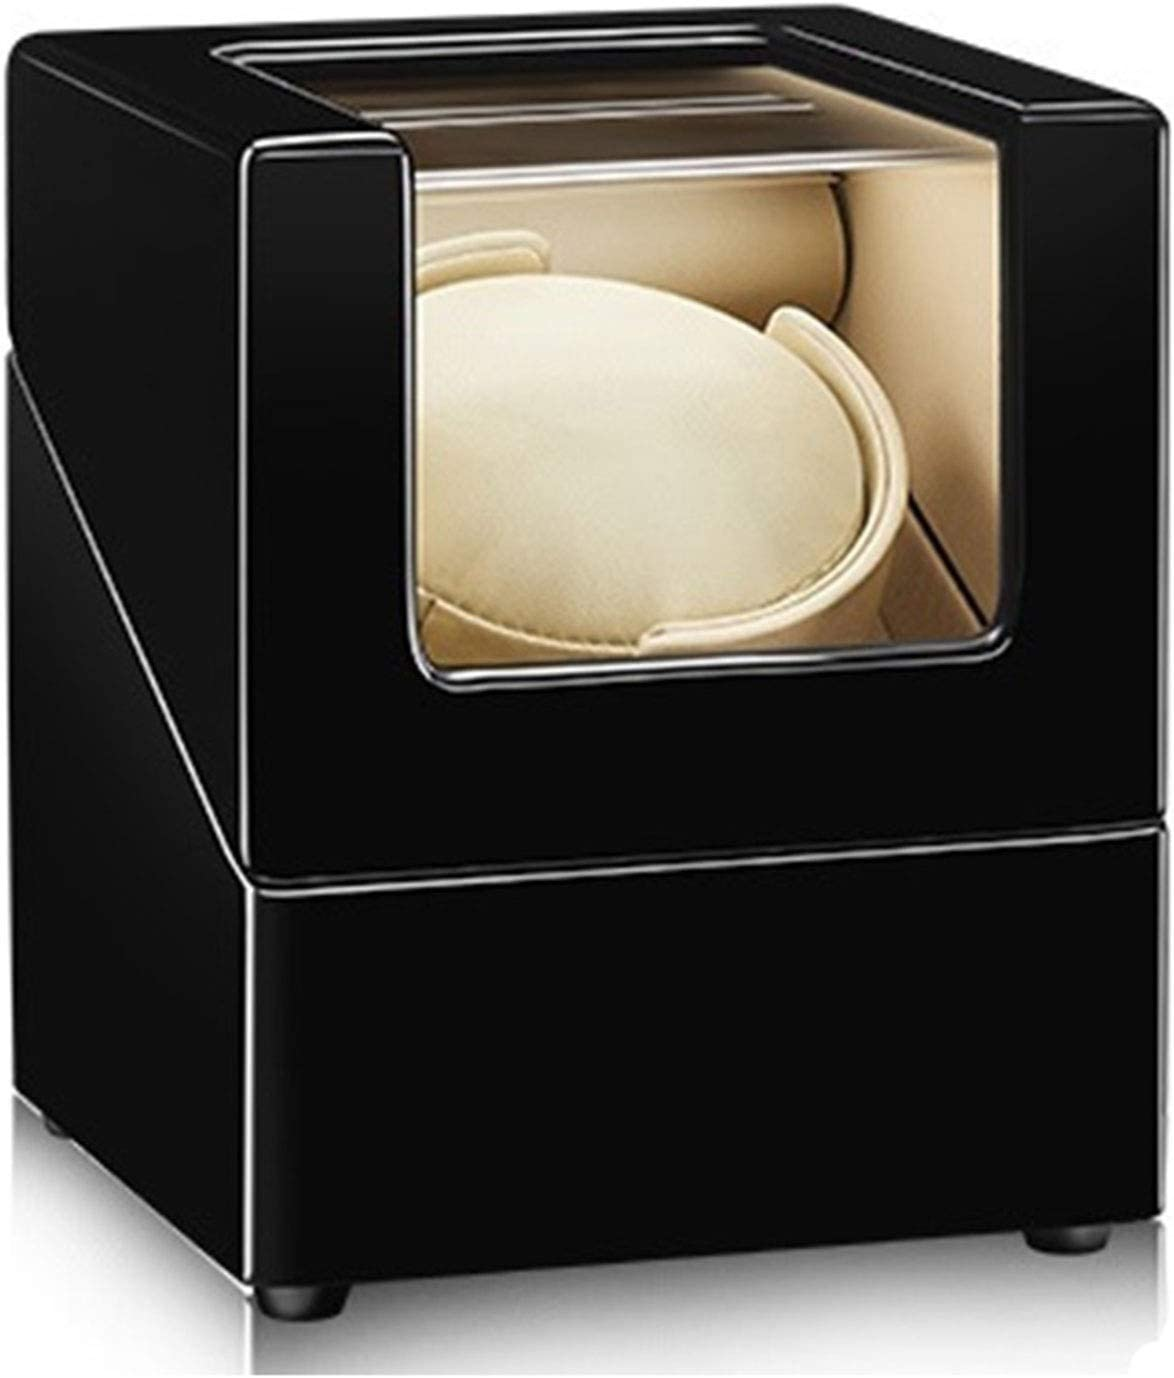 Betti 1 Slots shop Watch Winder for Aut Stop Watches Choice Automatic Motor